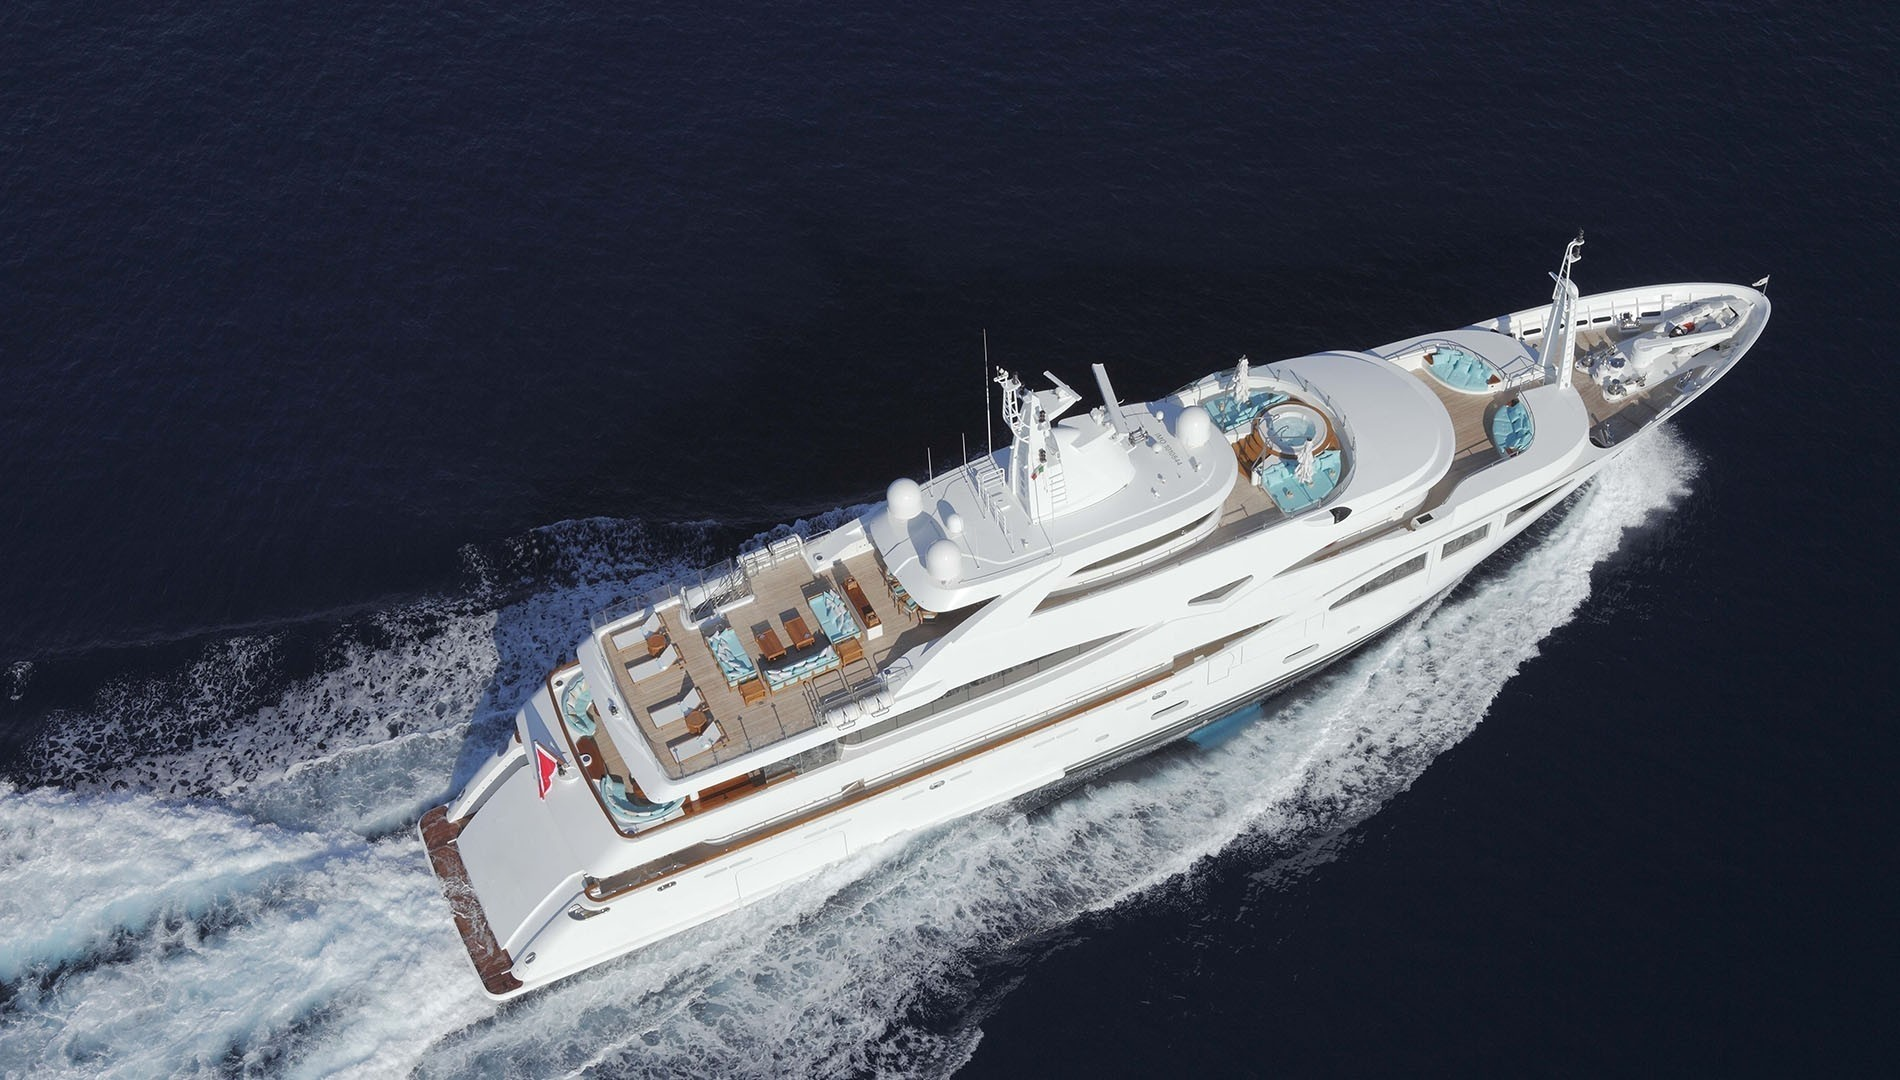 Motor yacht Ramble on Rose aerial view fo the vessel with great deck spaces